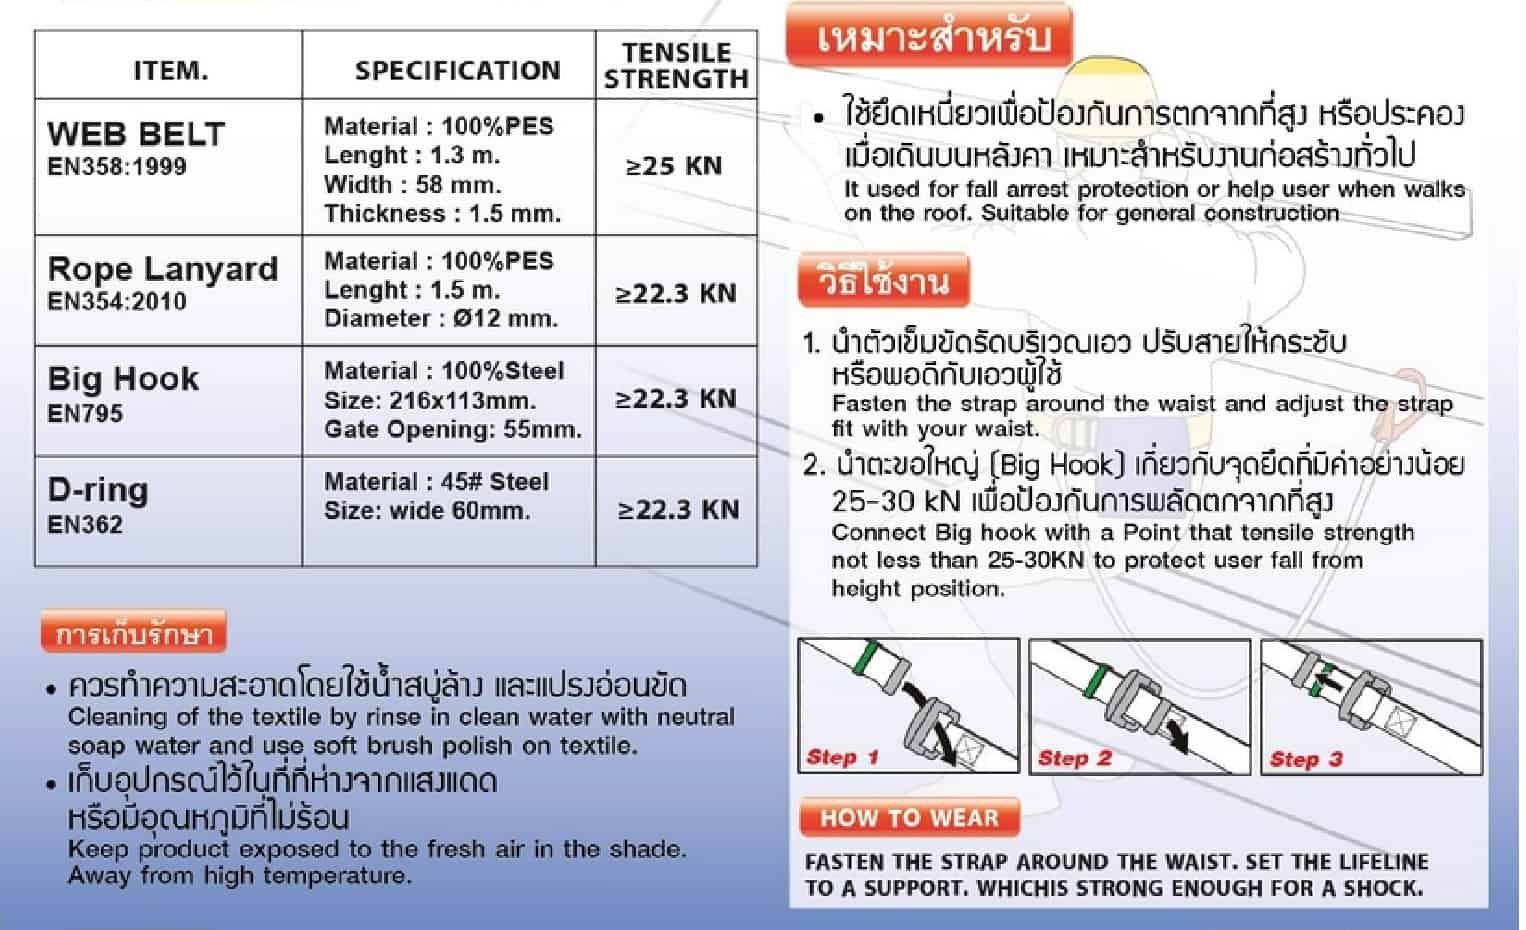 https://www.supersafetythailand.com/wp-content/uploads/2017/01/U737B.jpg